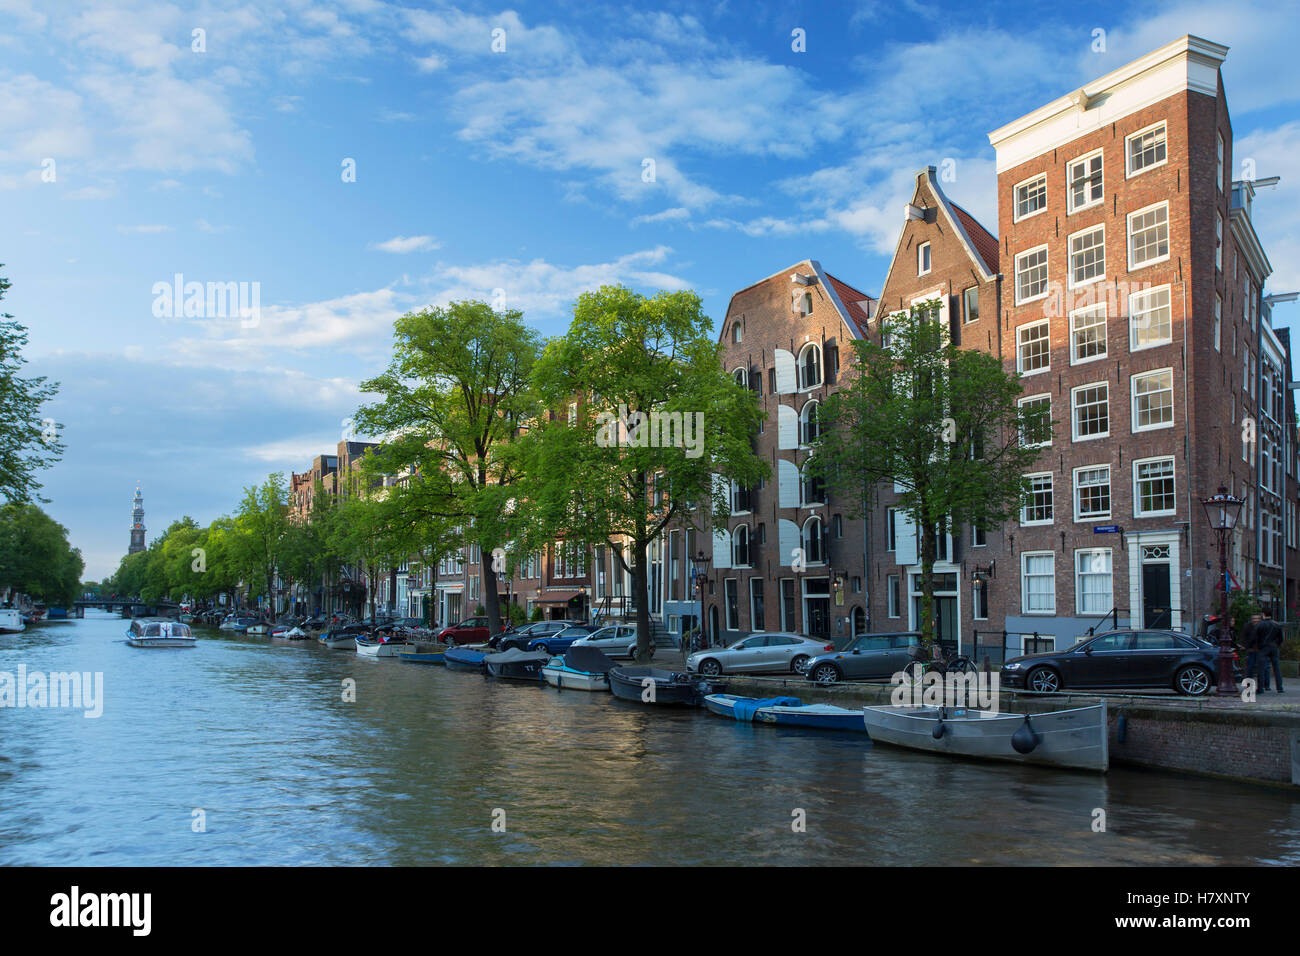 Houses along Prinsengracht canal, Amsterdam, Netherlands - Stock Image